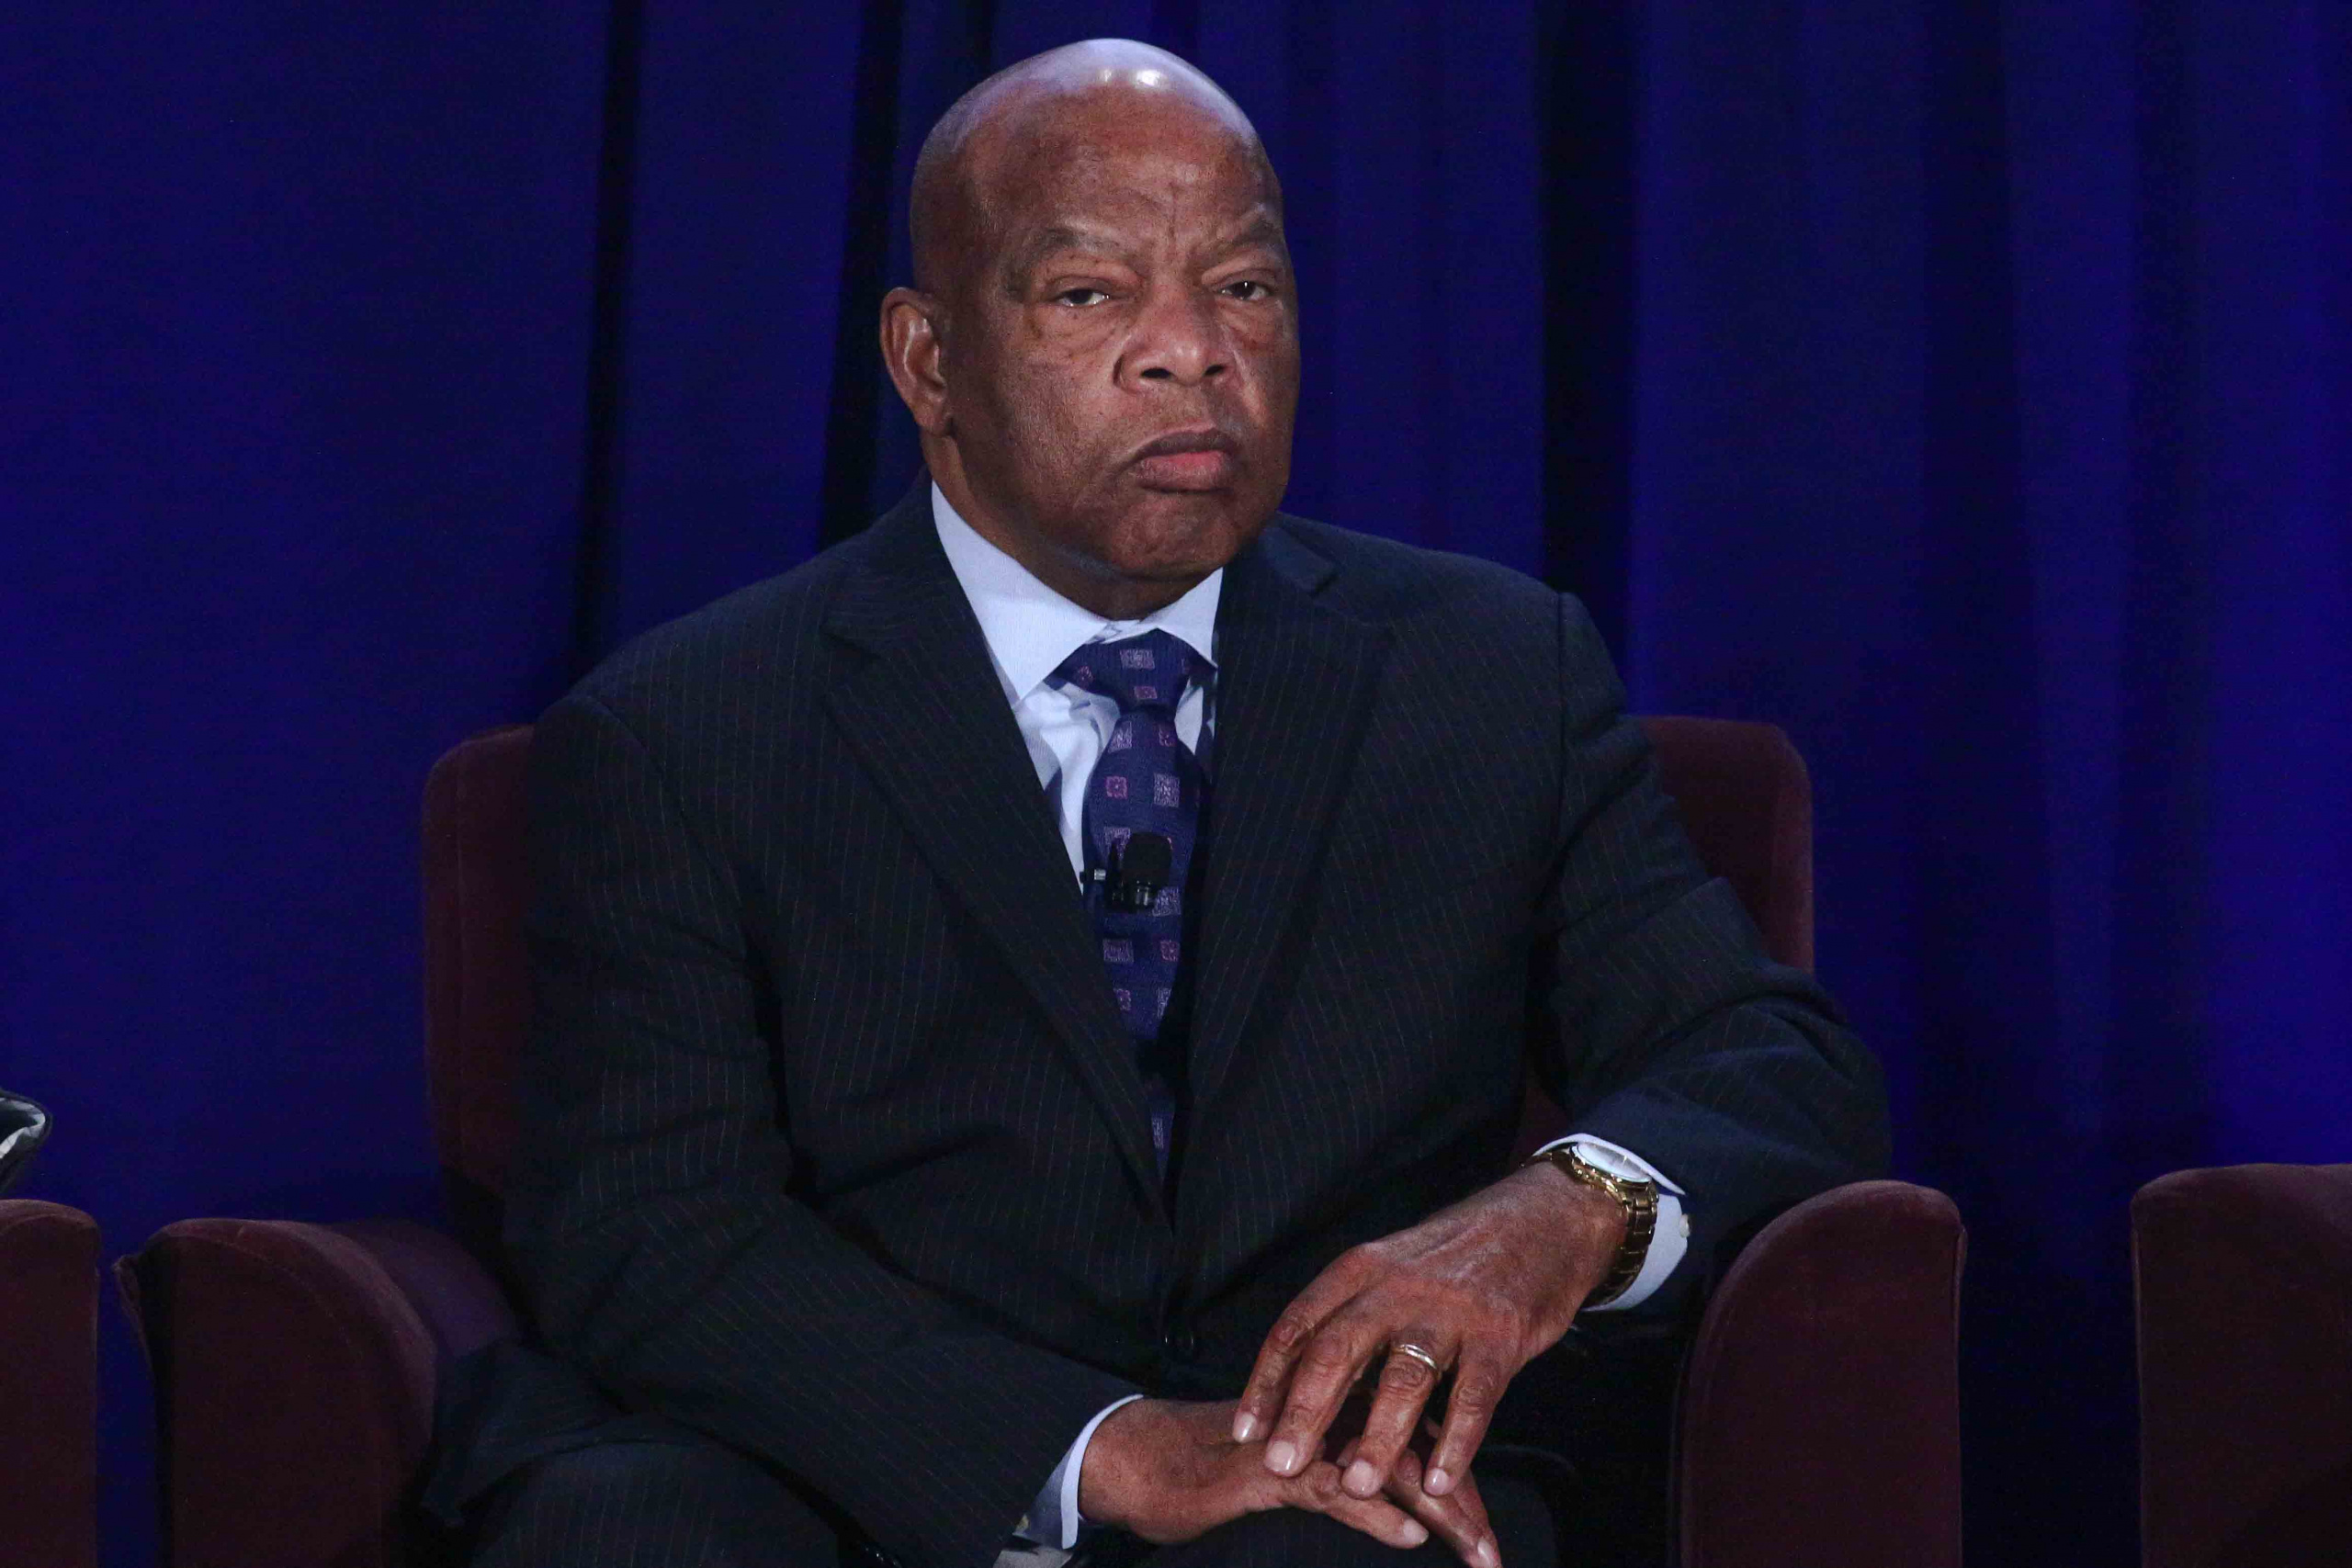 Civil rights icon and United States Congressman John Lewis listens to a question.